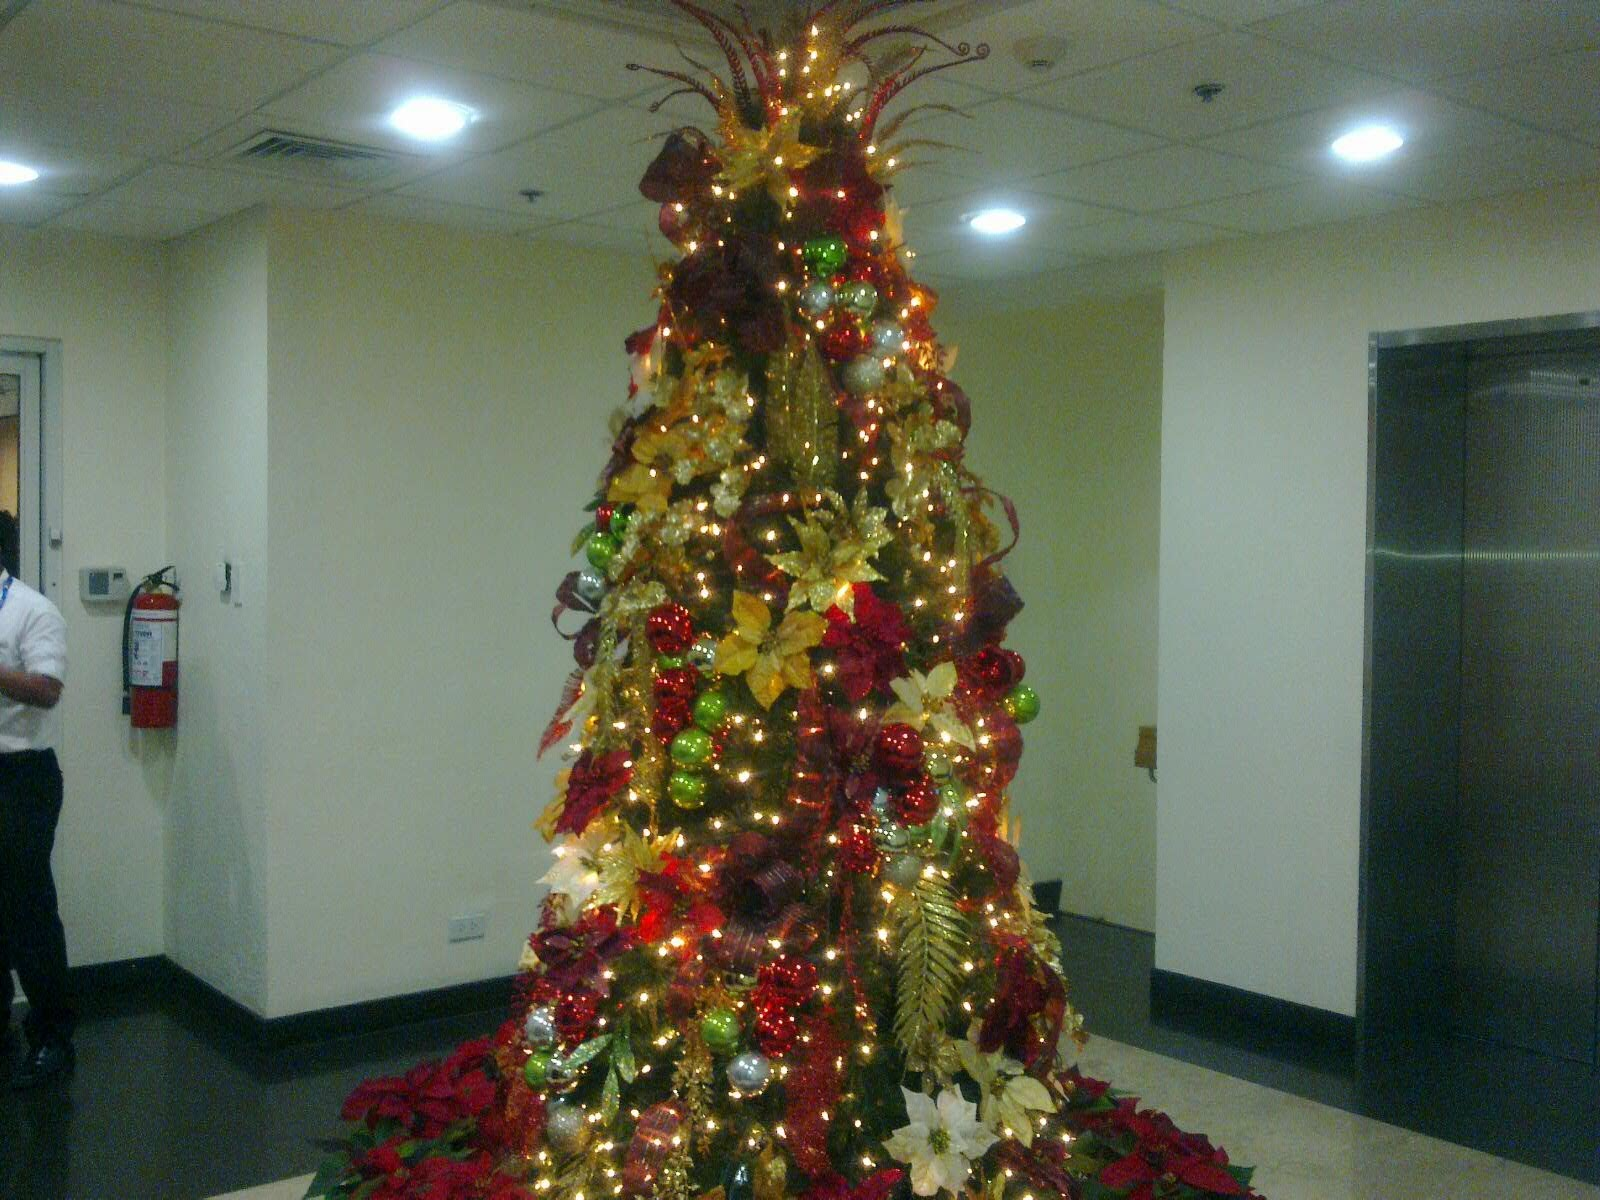 Our mission to the philippines december 1st vip reception Christmas tree decorating ideas philippines